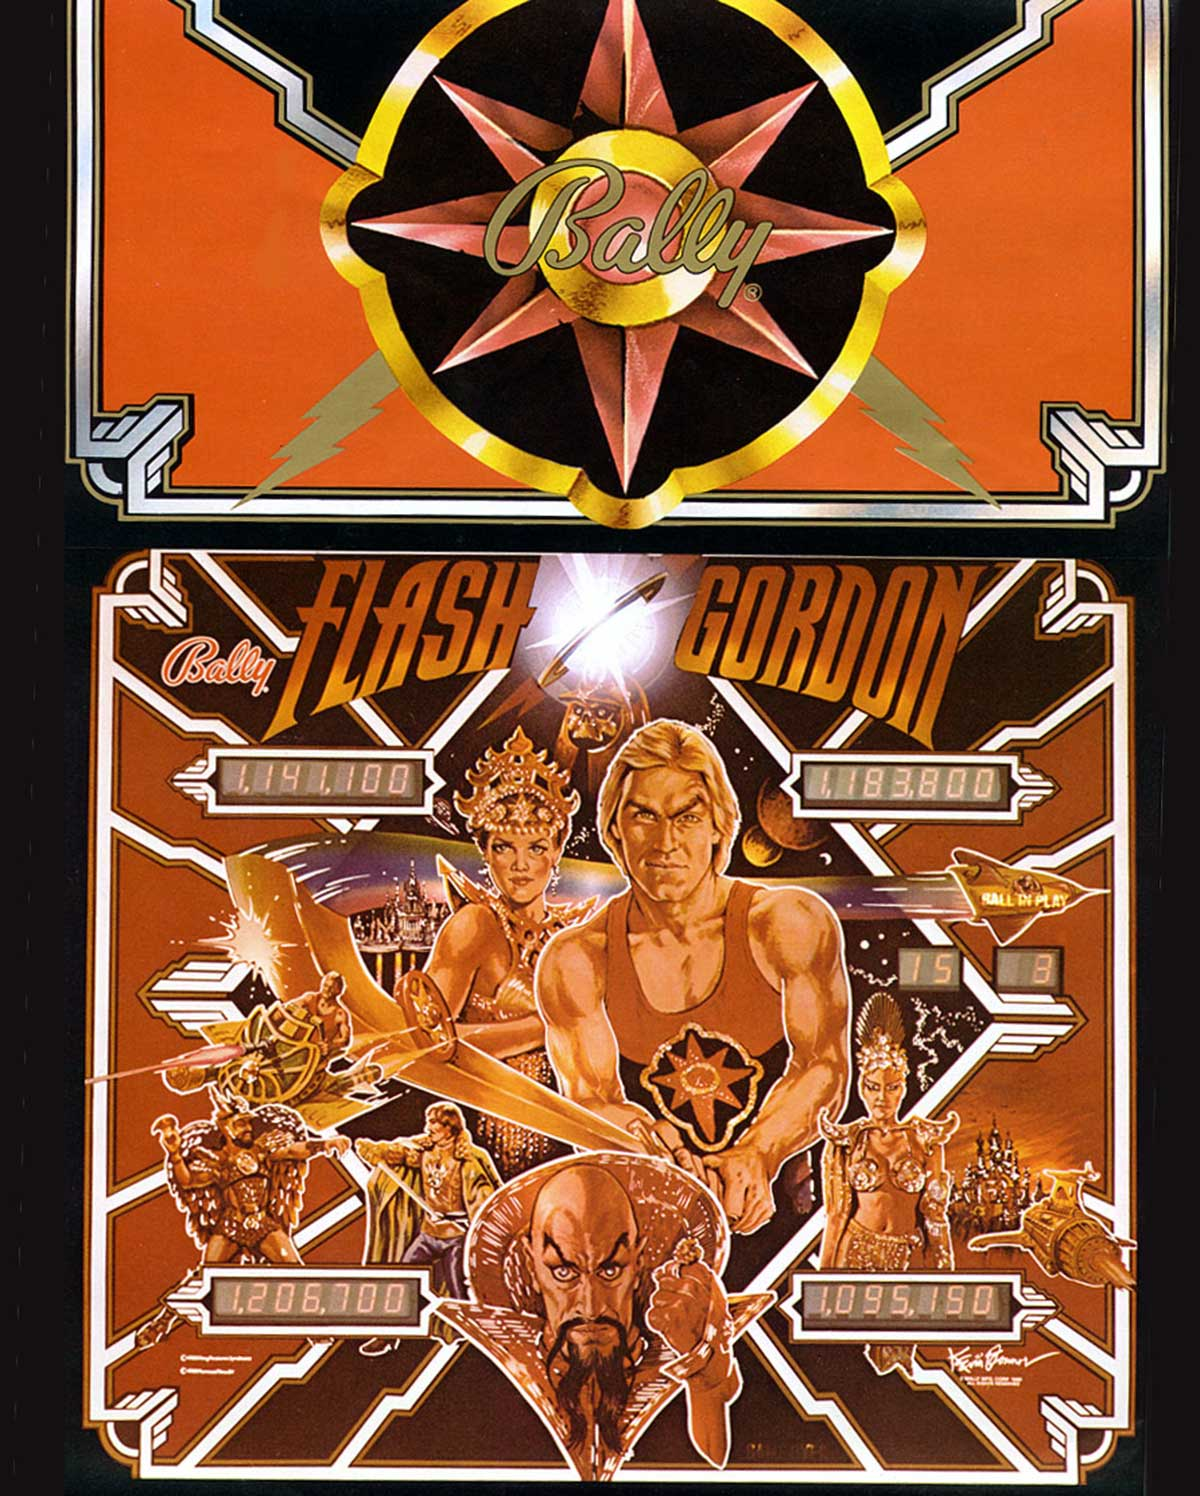 flash-gordon-flyer-3.jpg